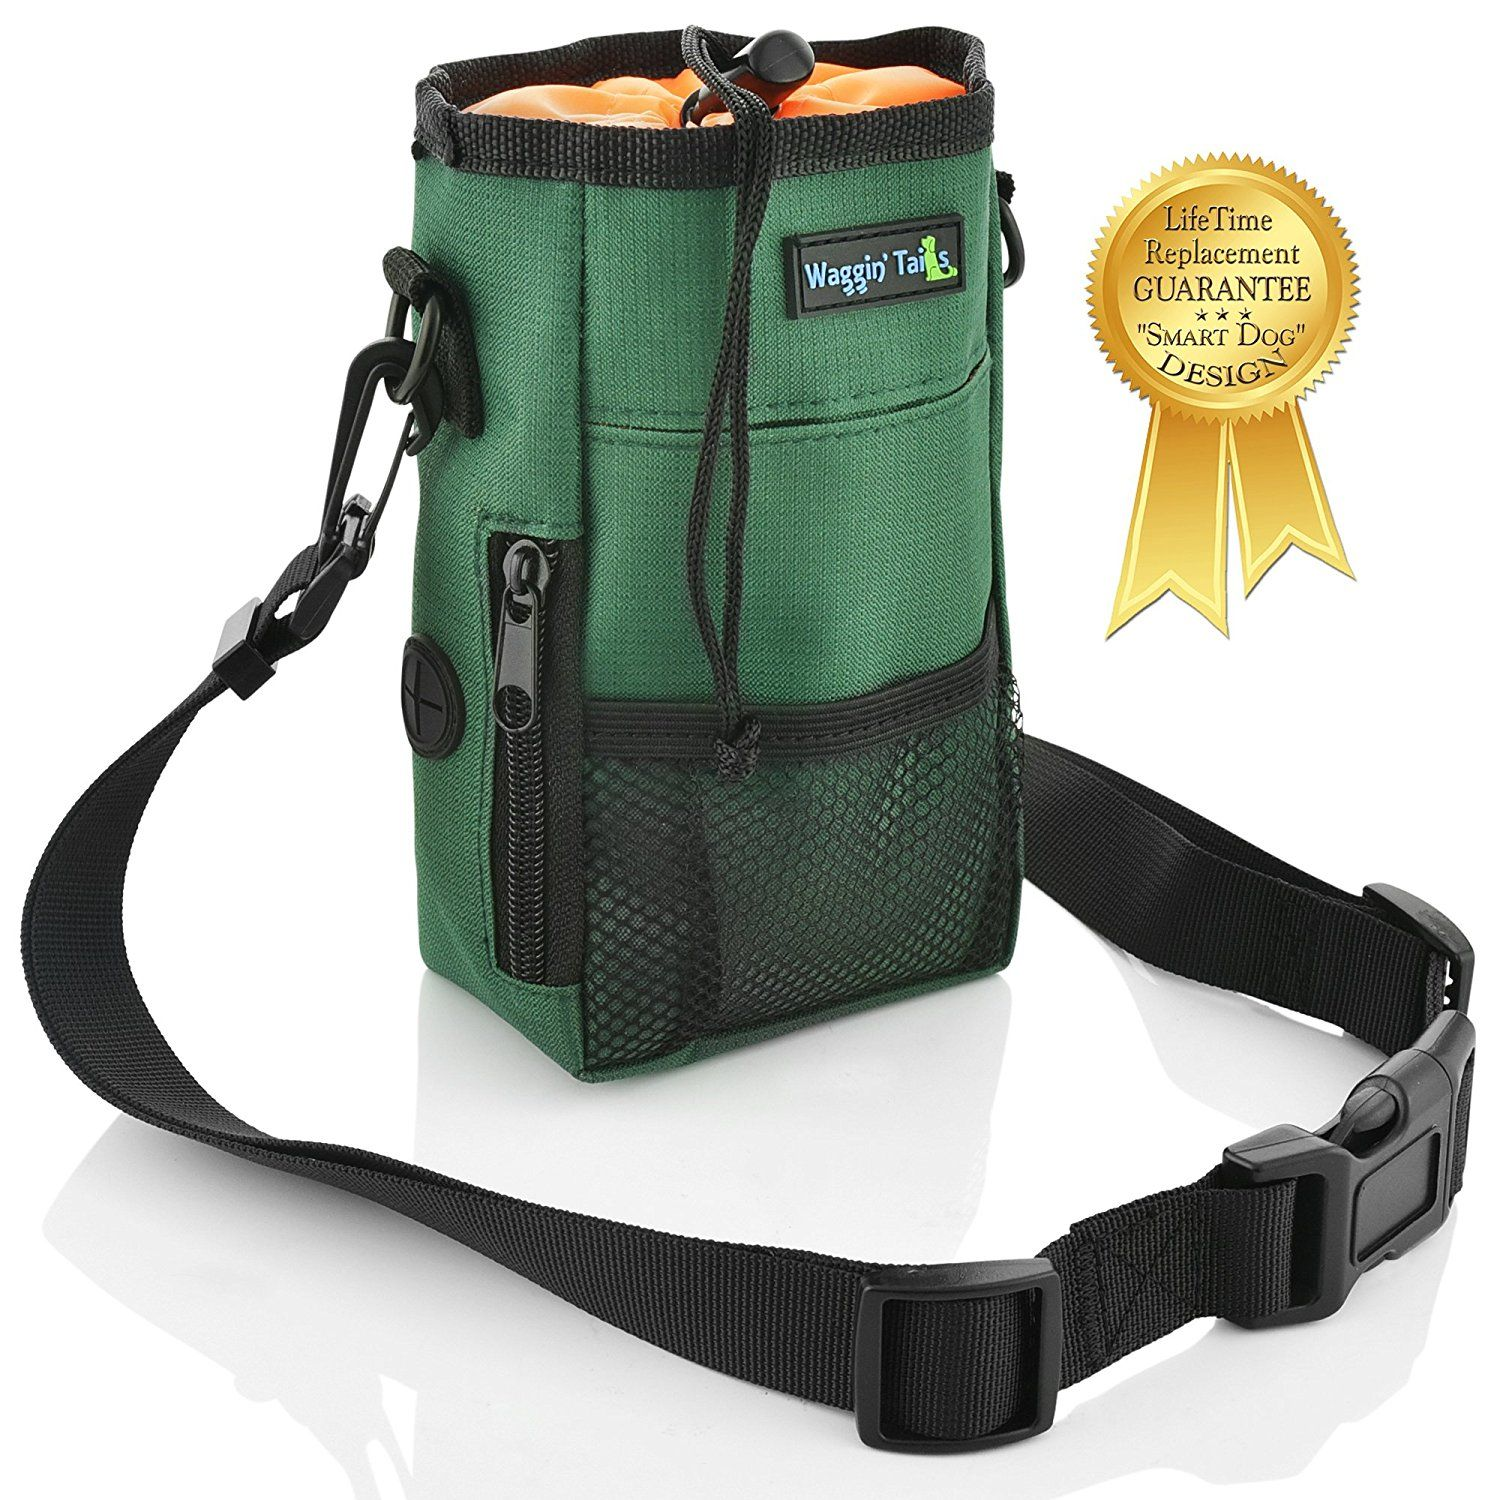 Waggin Tails Smart Dog Treat Pouch Bag For Dog Training Easy